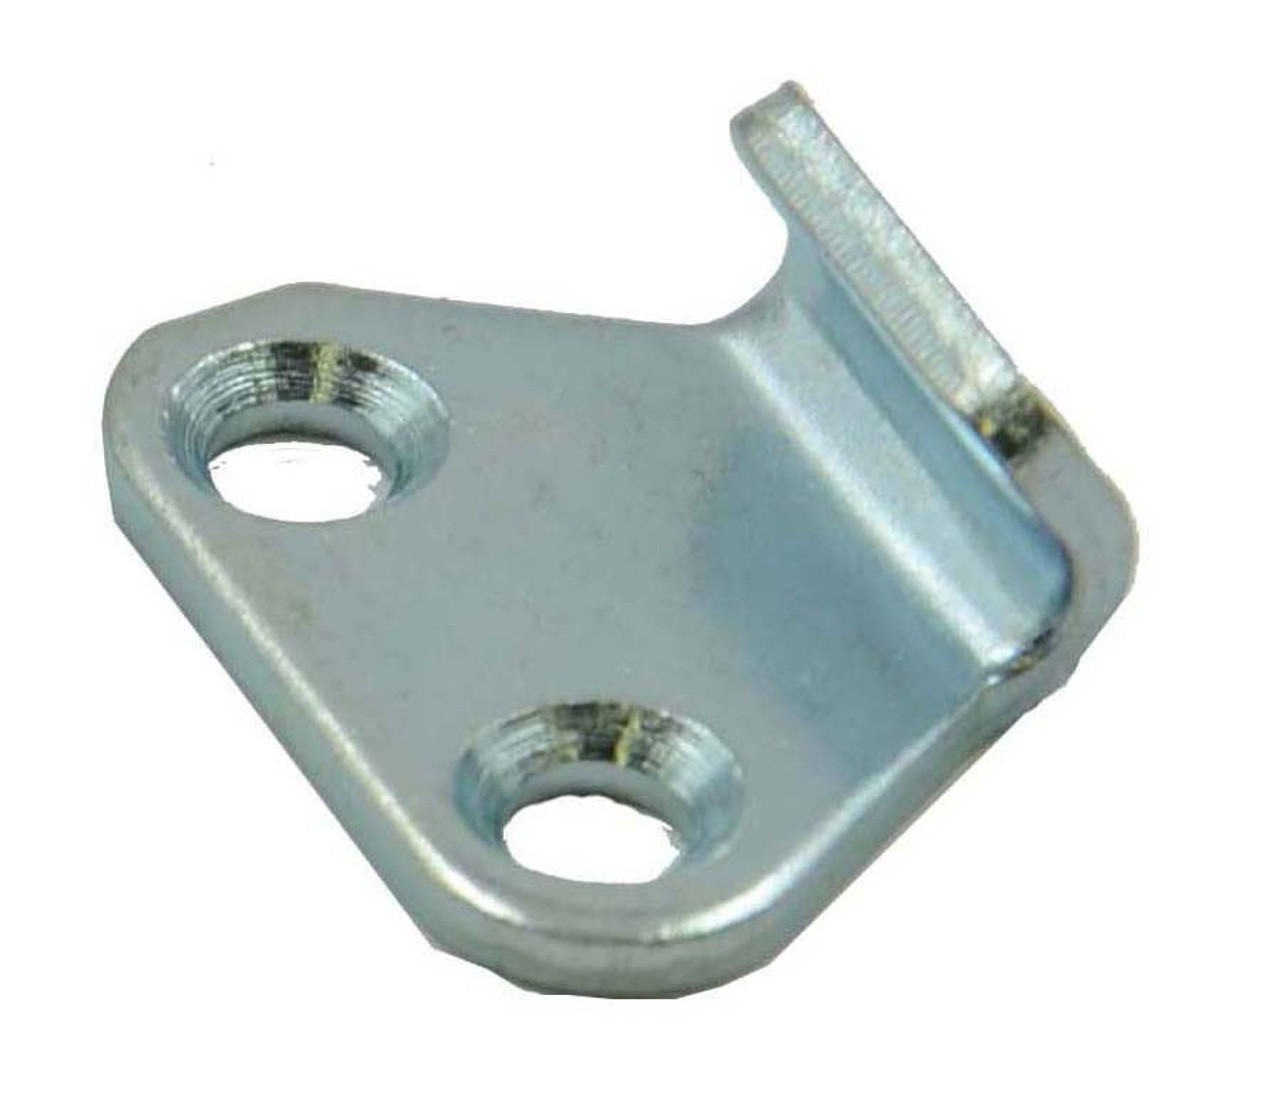 Fastener Catch Plate Zp Suit 701 Series